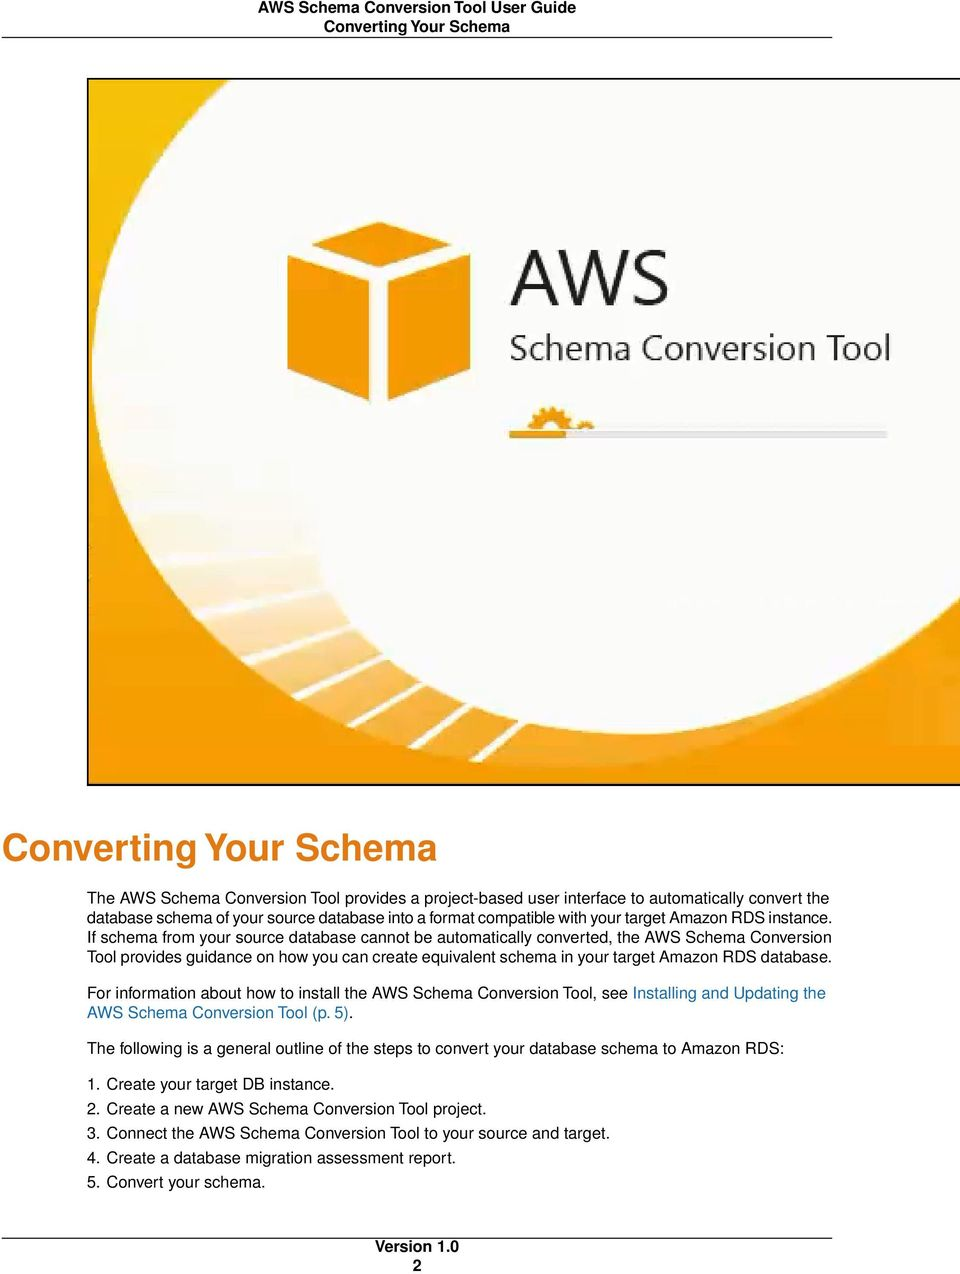 If schema from your source database cannot be automatically converted, the AWS Schema Conversion Tool provides guidance on how you can create equivalent schema in your target Amazon RDS database.